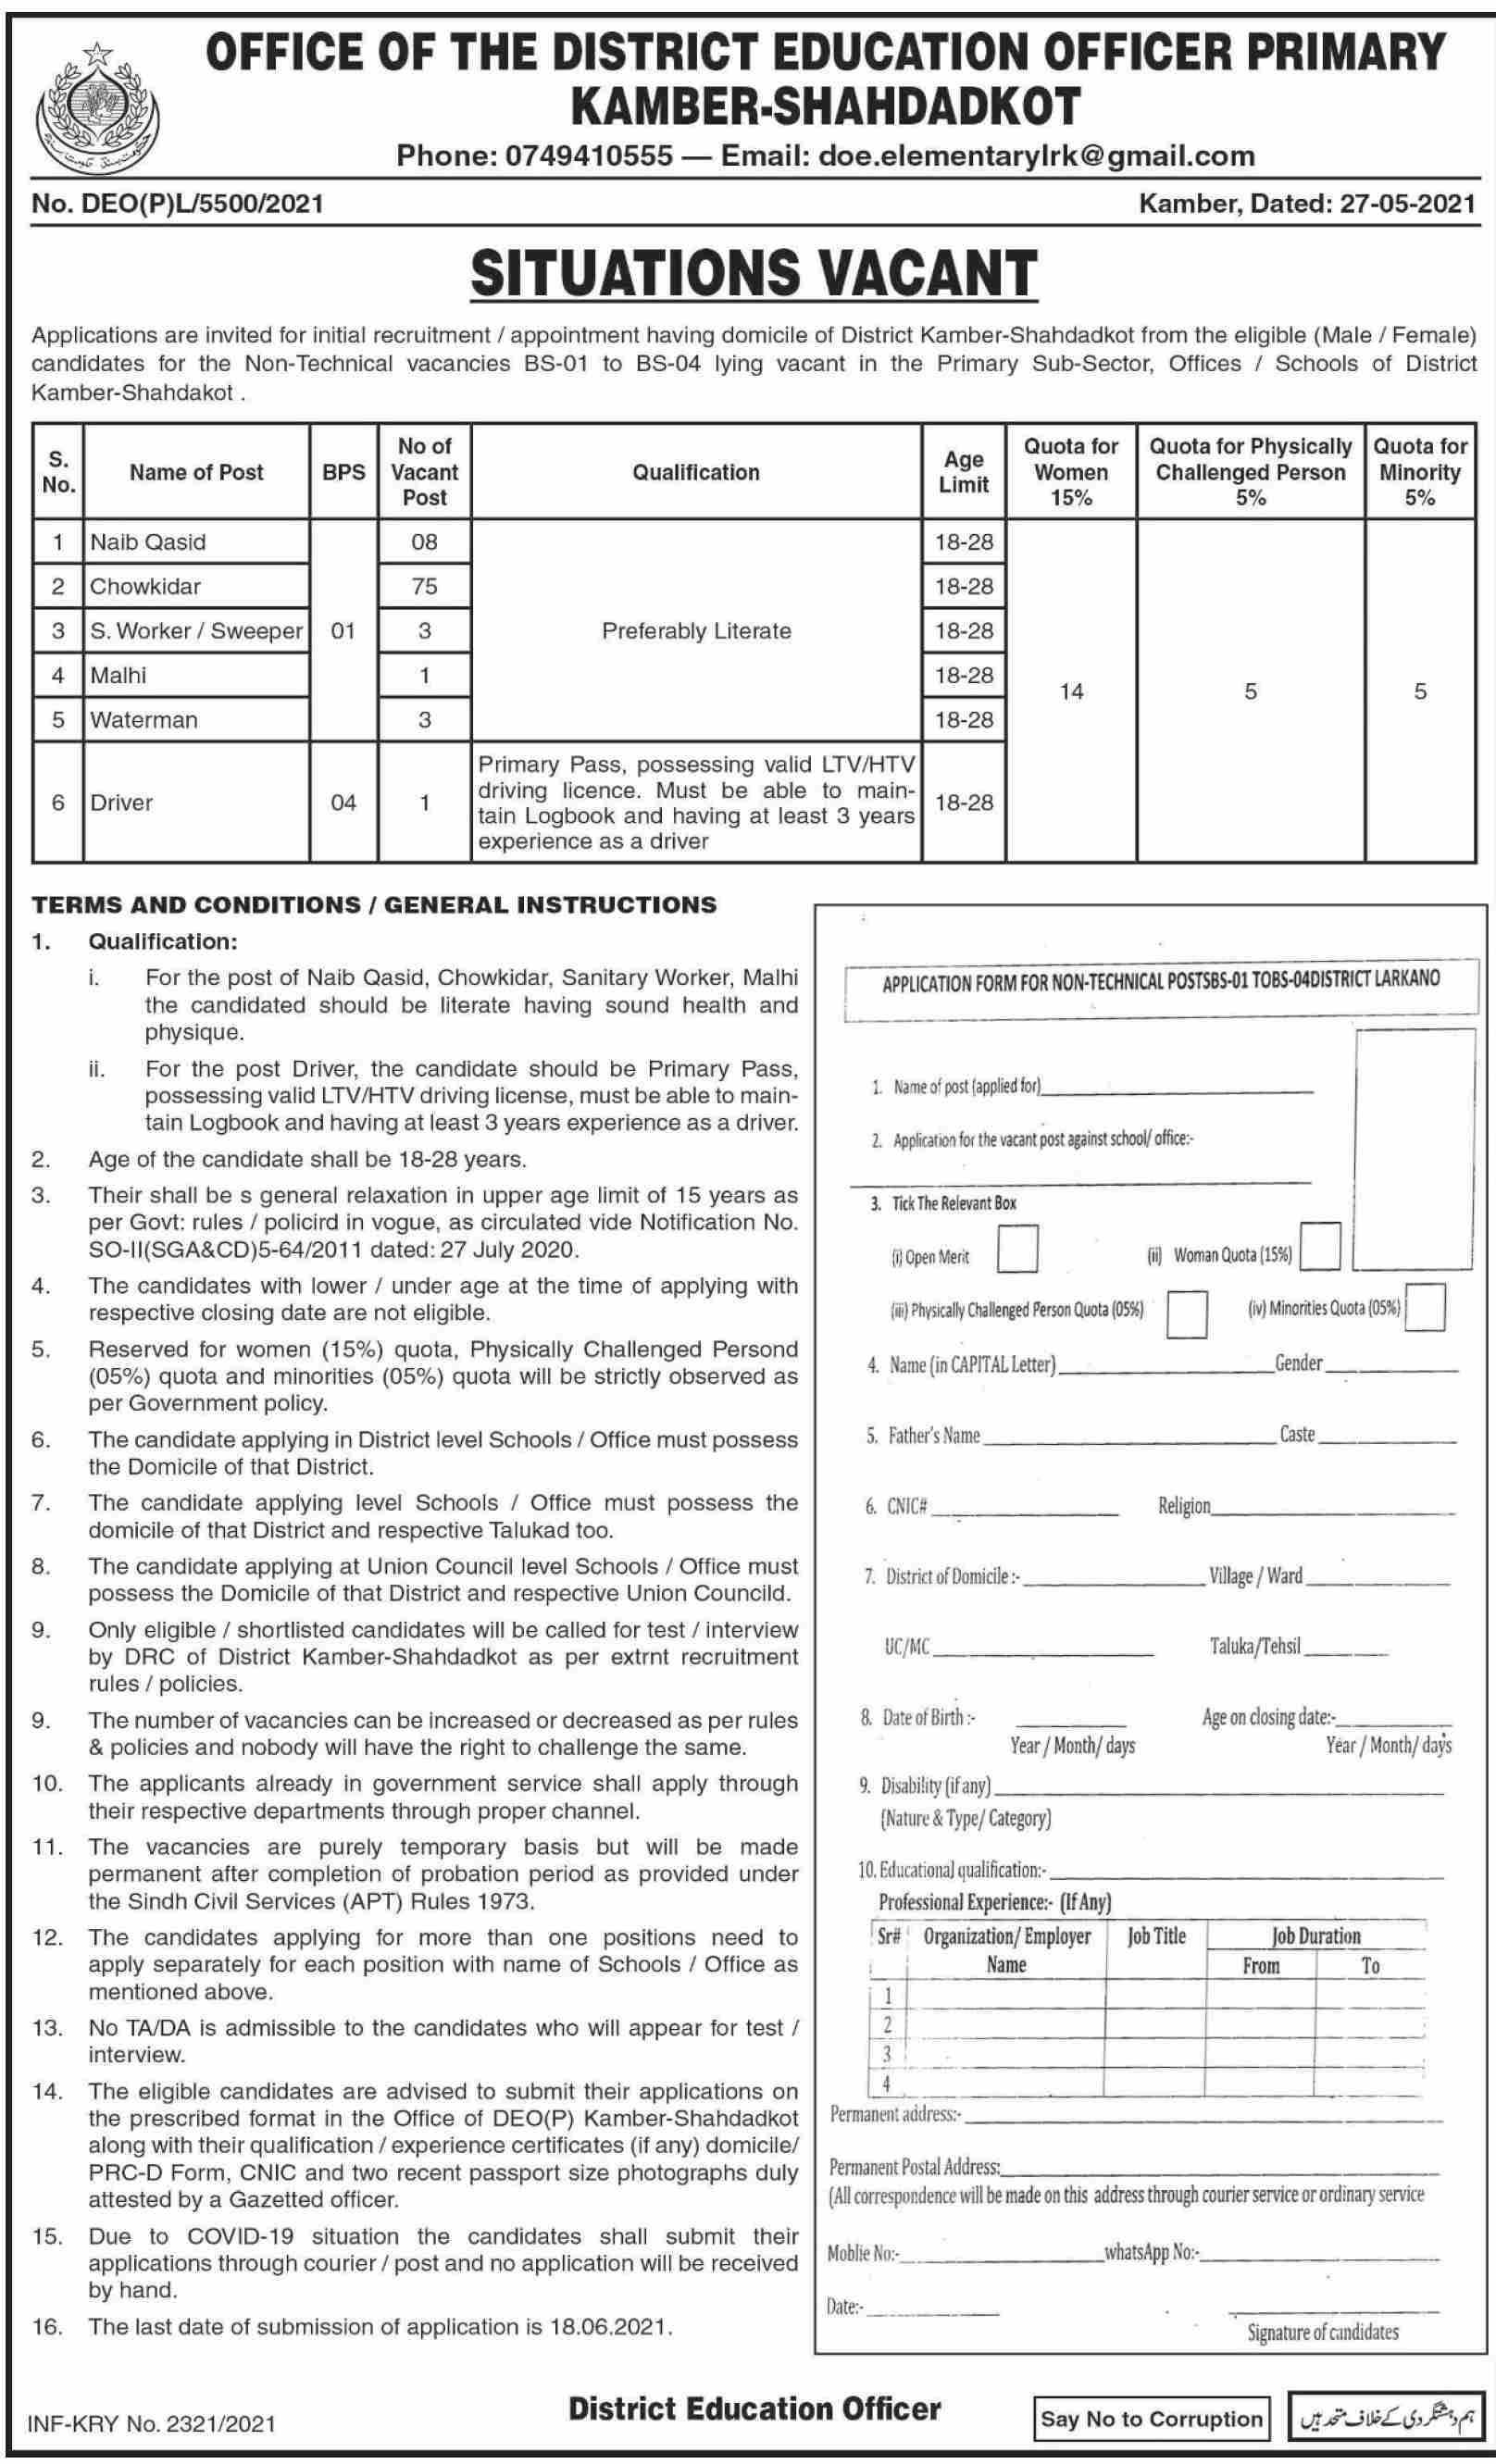 District Education Authority jobs newspaper ad for Naib Qasid in Kamber on 2021-06-10